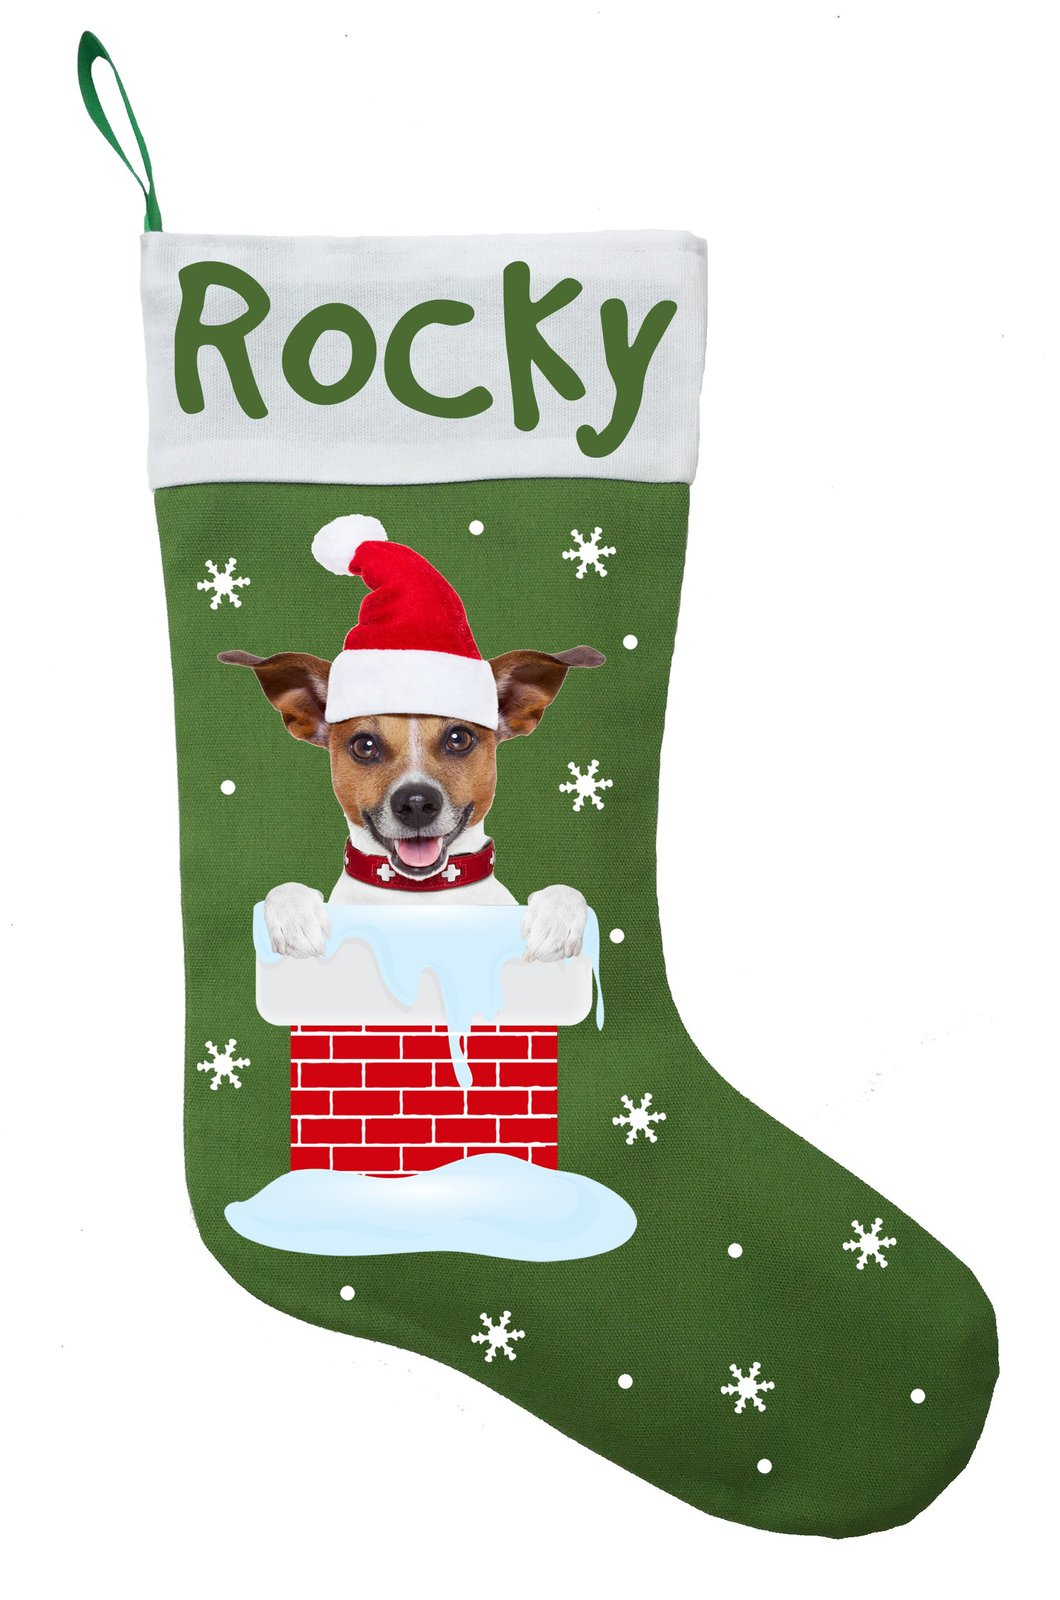 Jack Russell Terrier Christmas Stocking-Personalized Jack Russel Stocking-Green